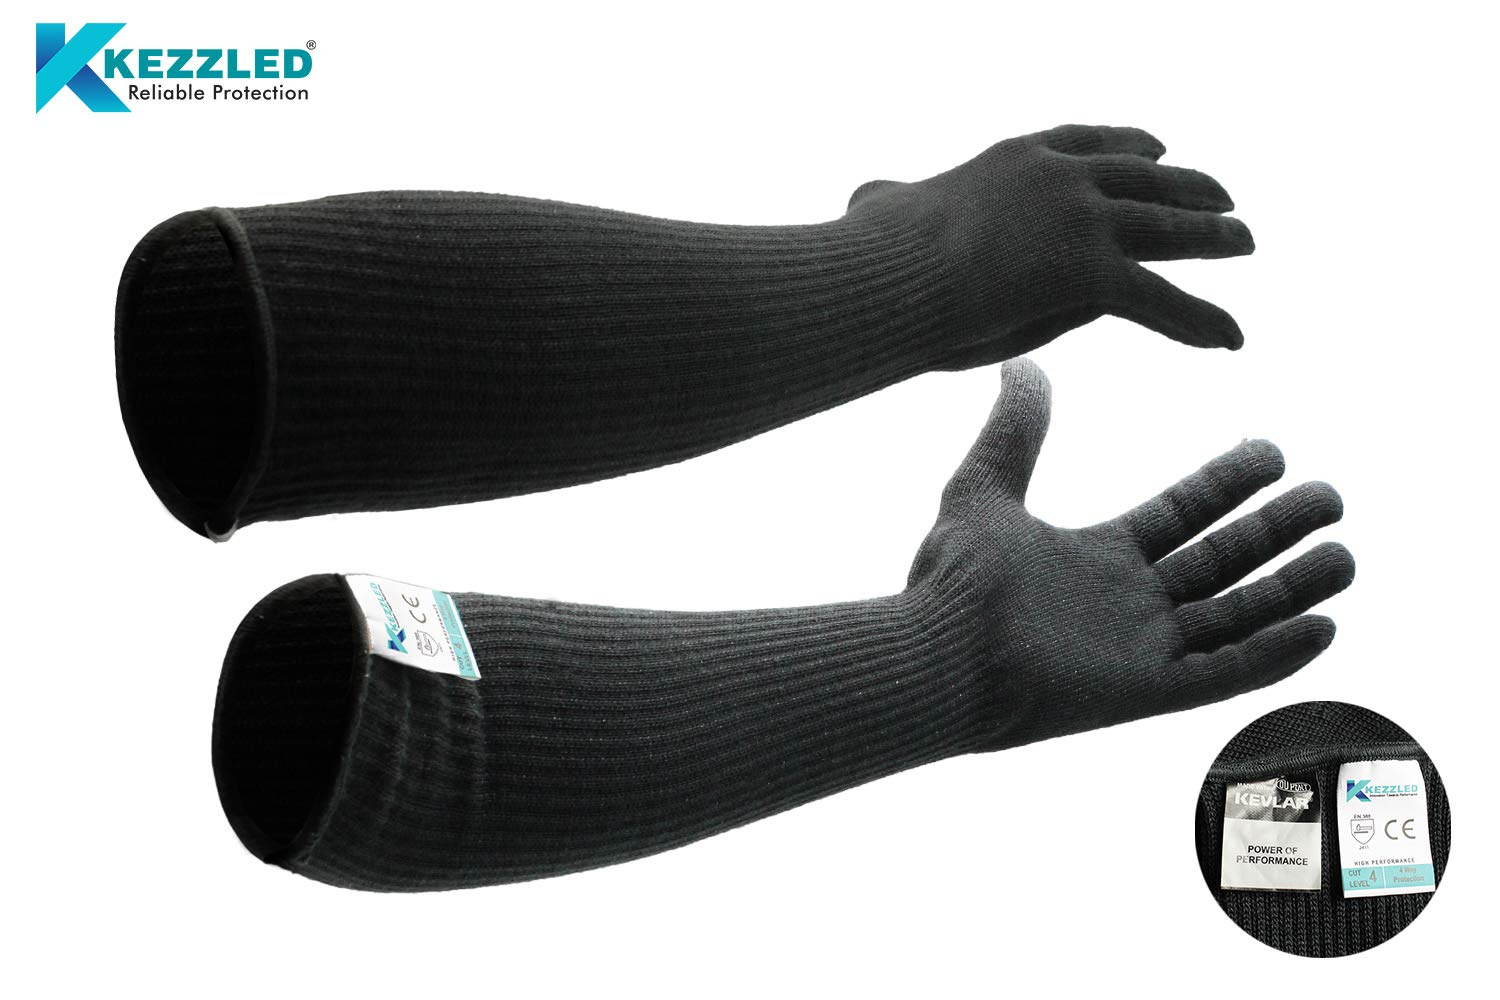 Cut/Scratch/Heat Resistance Designer Glove with Extended Arm Sleeve- Black (Made with Kevlar by DuPont) by KEZZLED (Image #1)